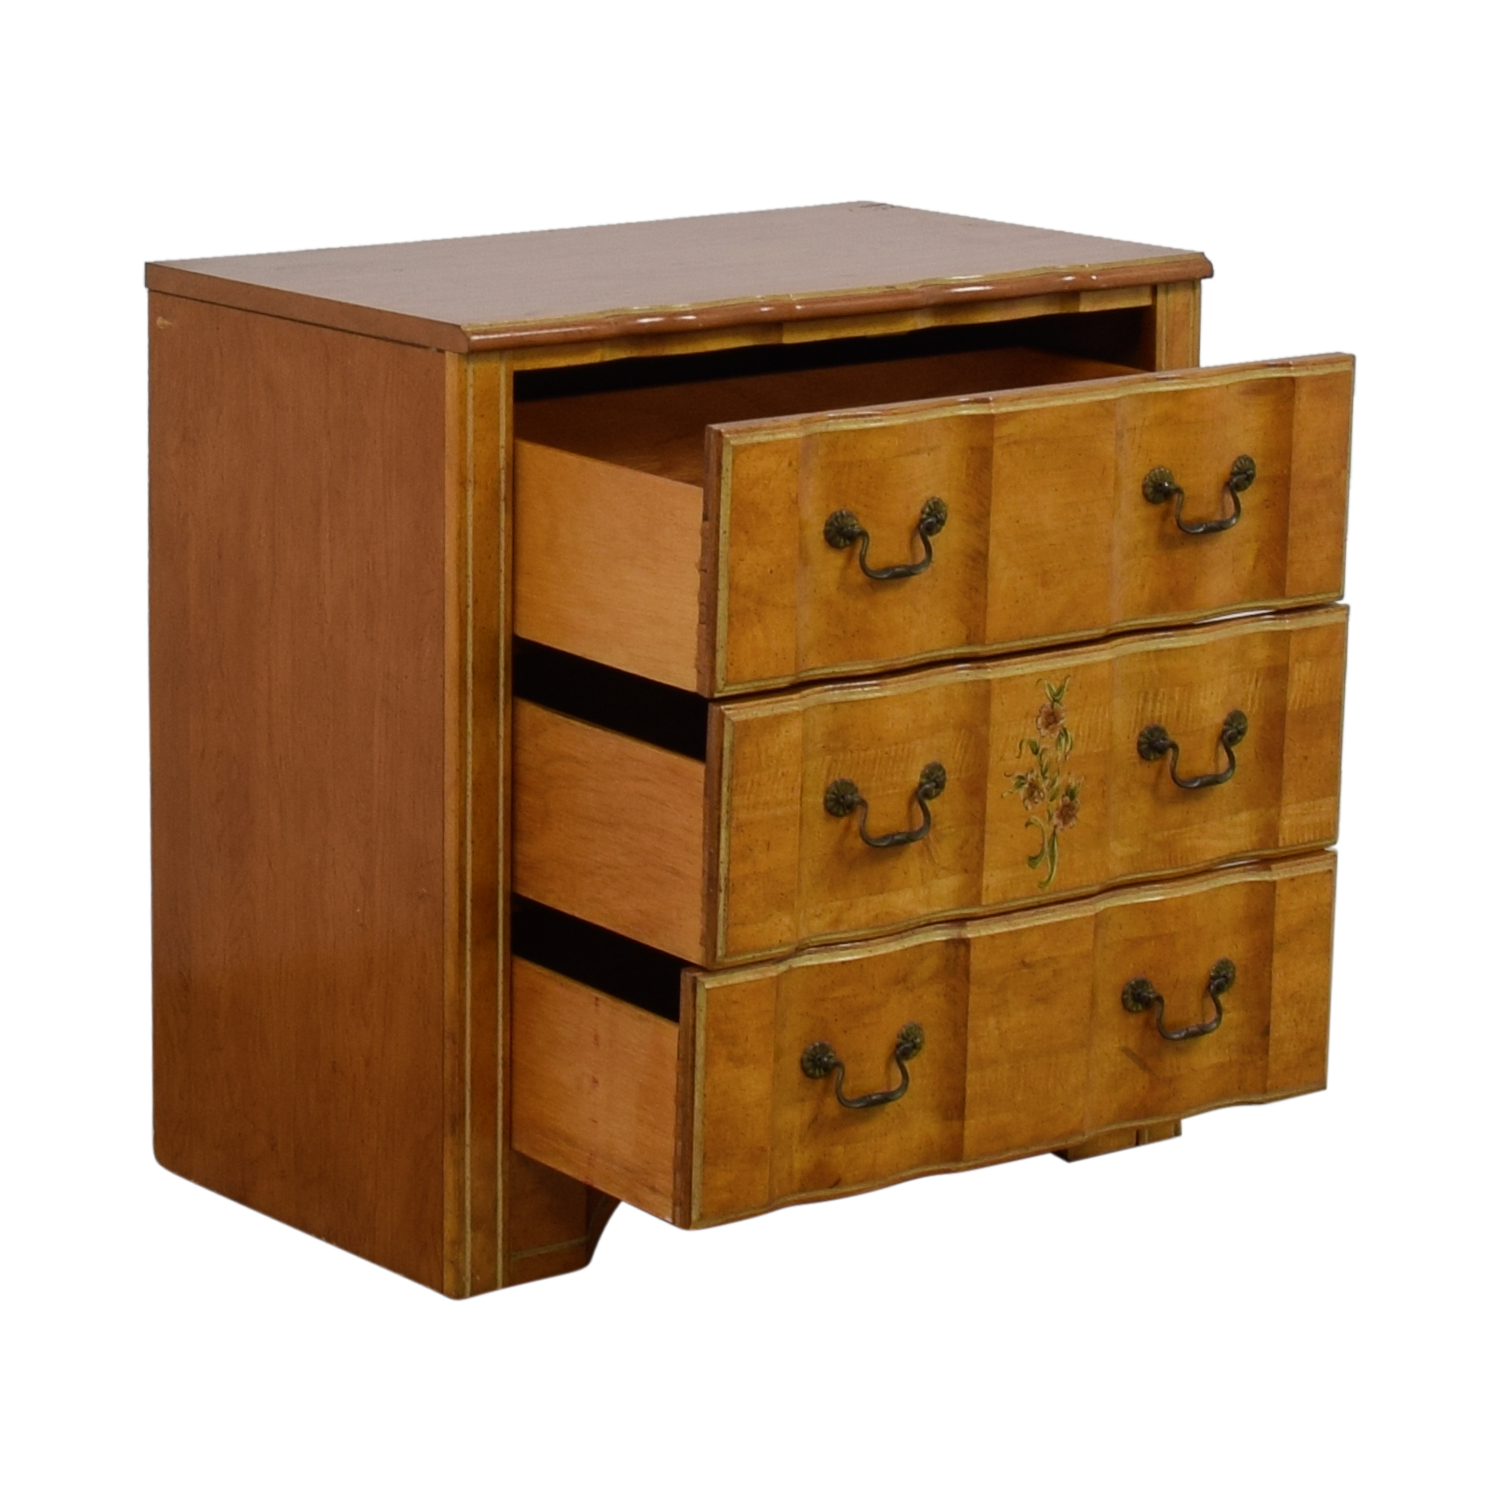 Vintage Painted Three-Drawer Chest of Drawers Beige